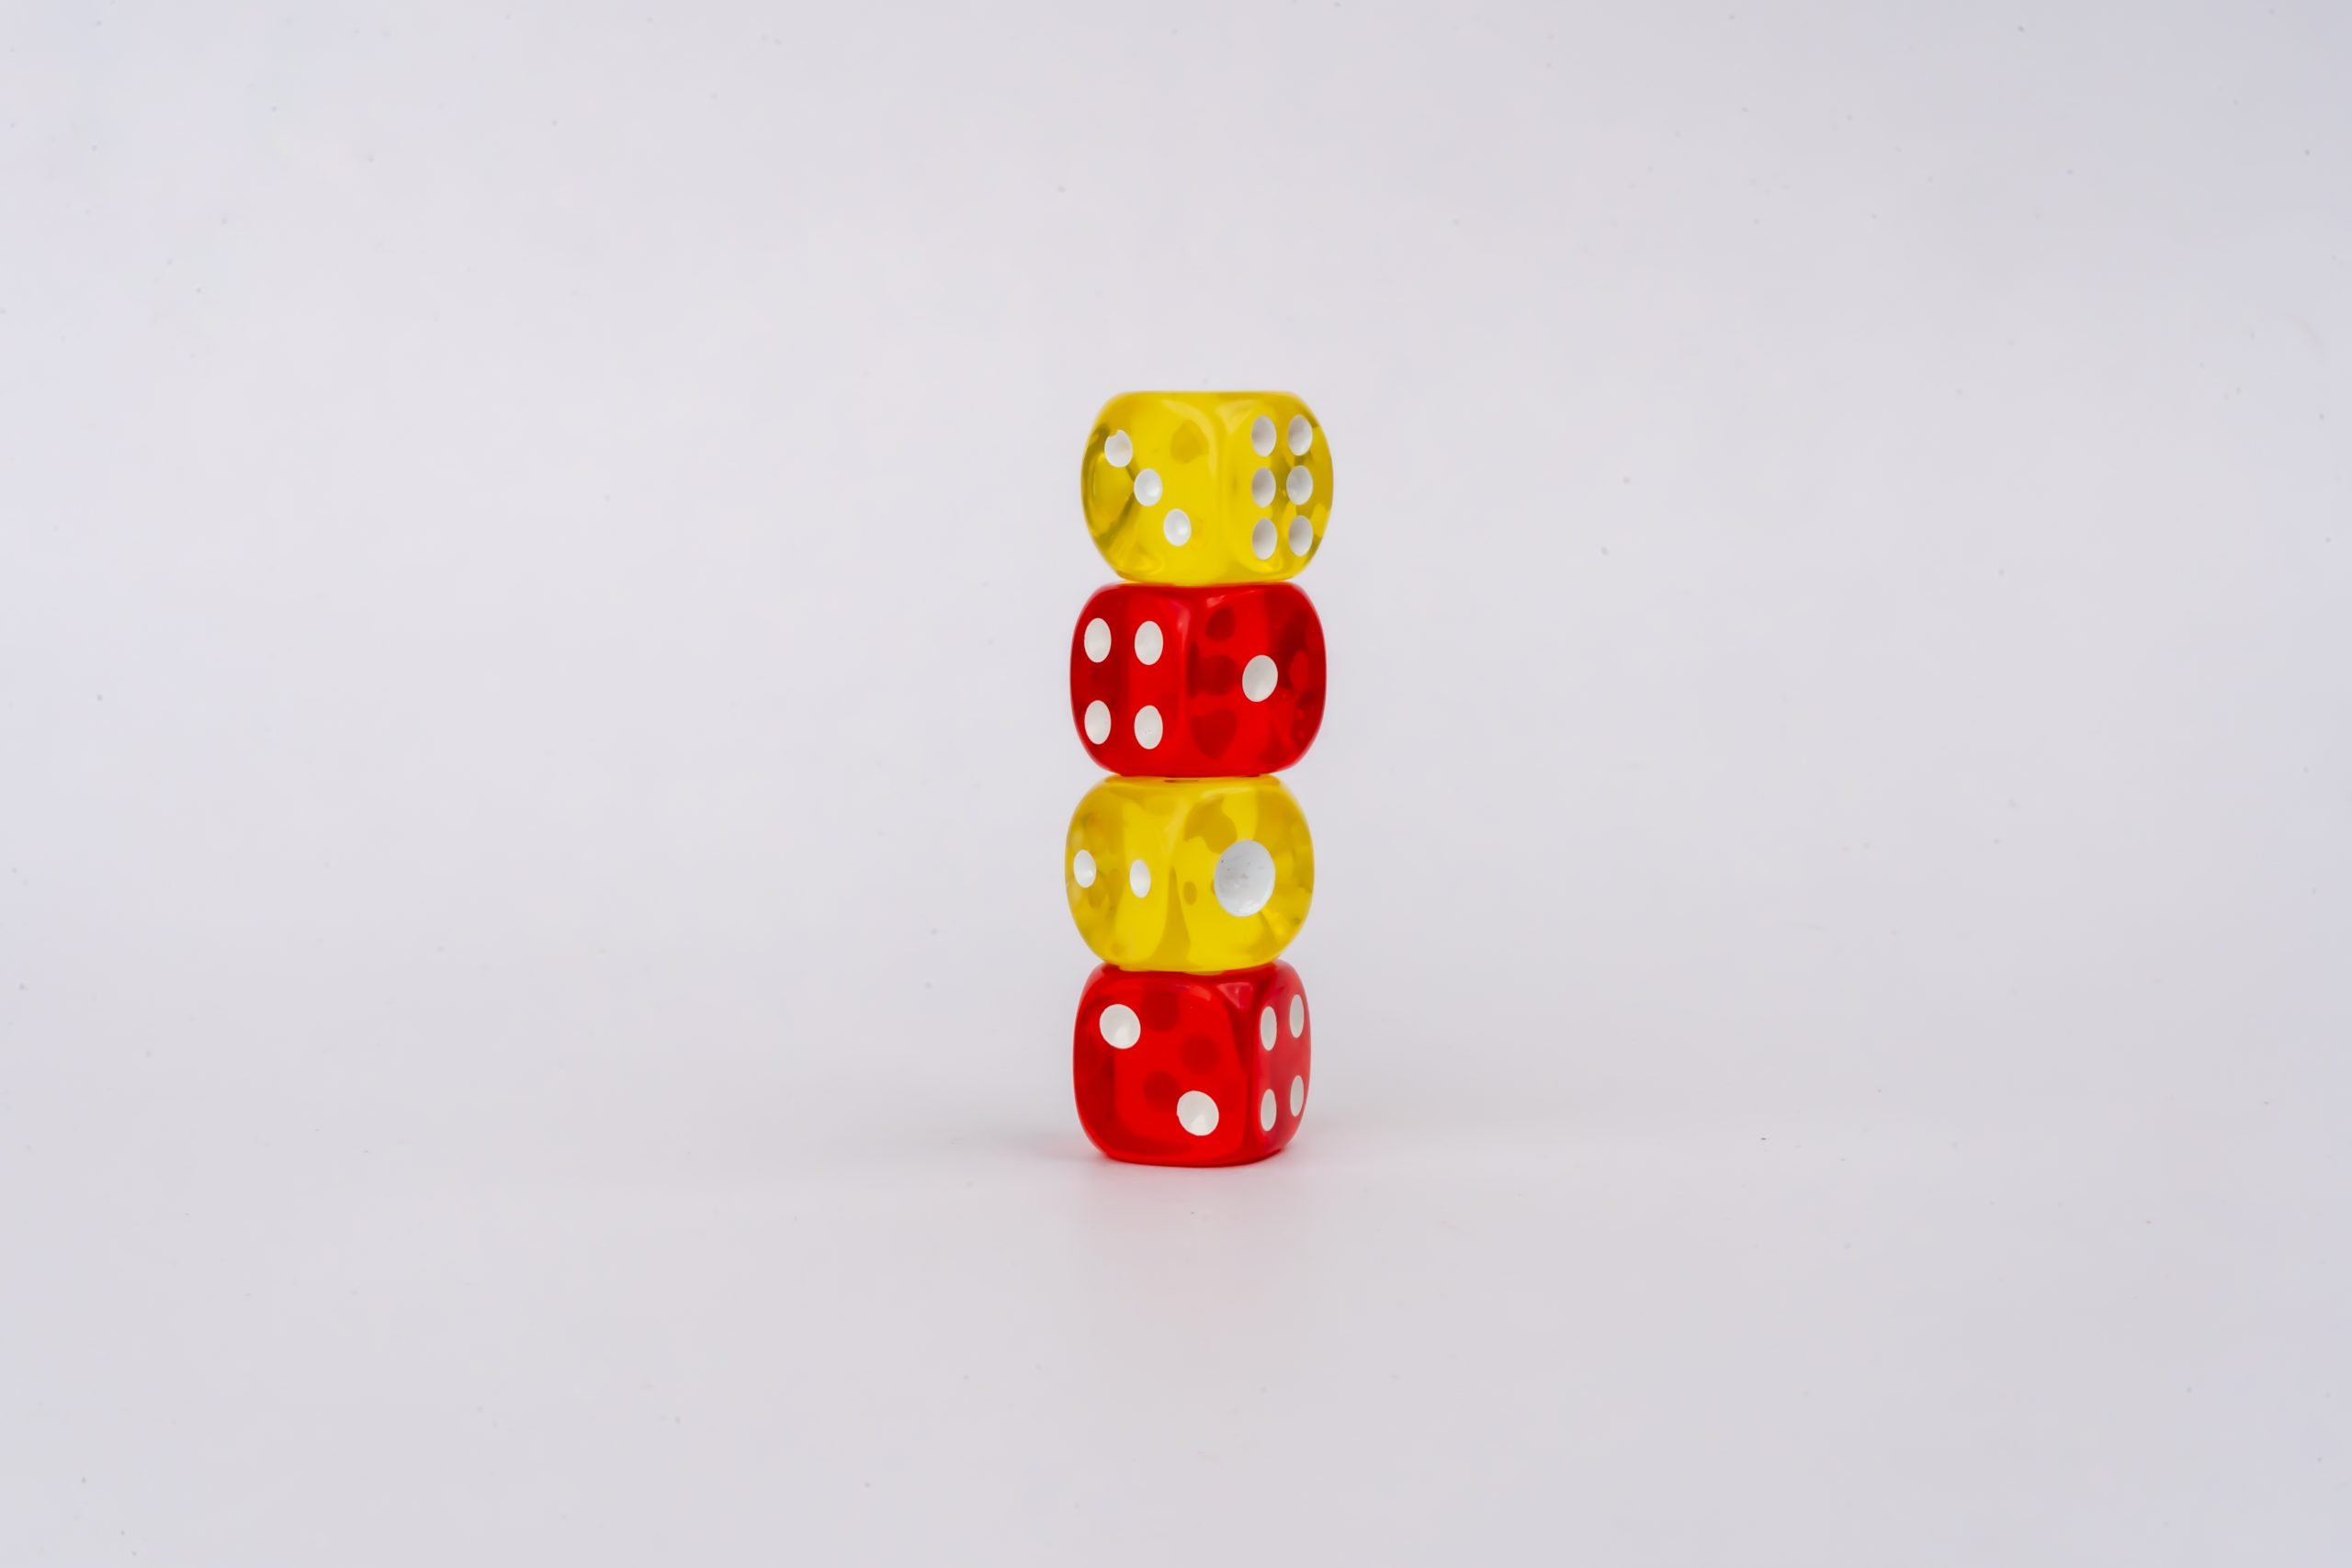 Red and yellow dice stack on white background